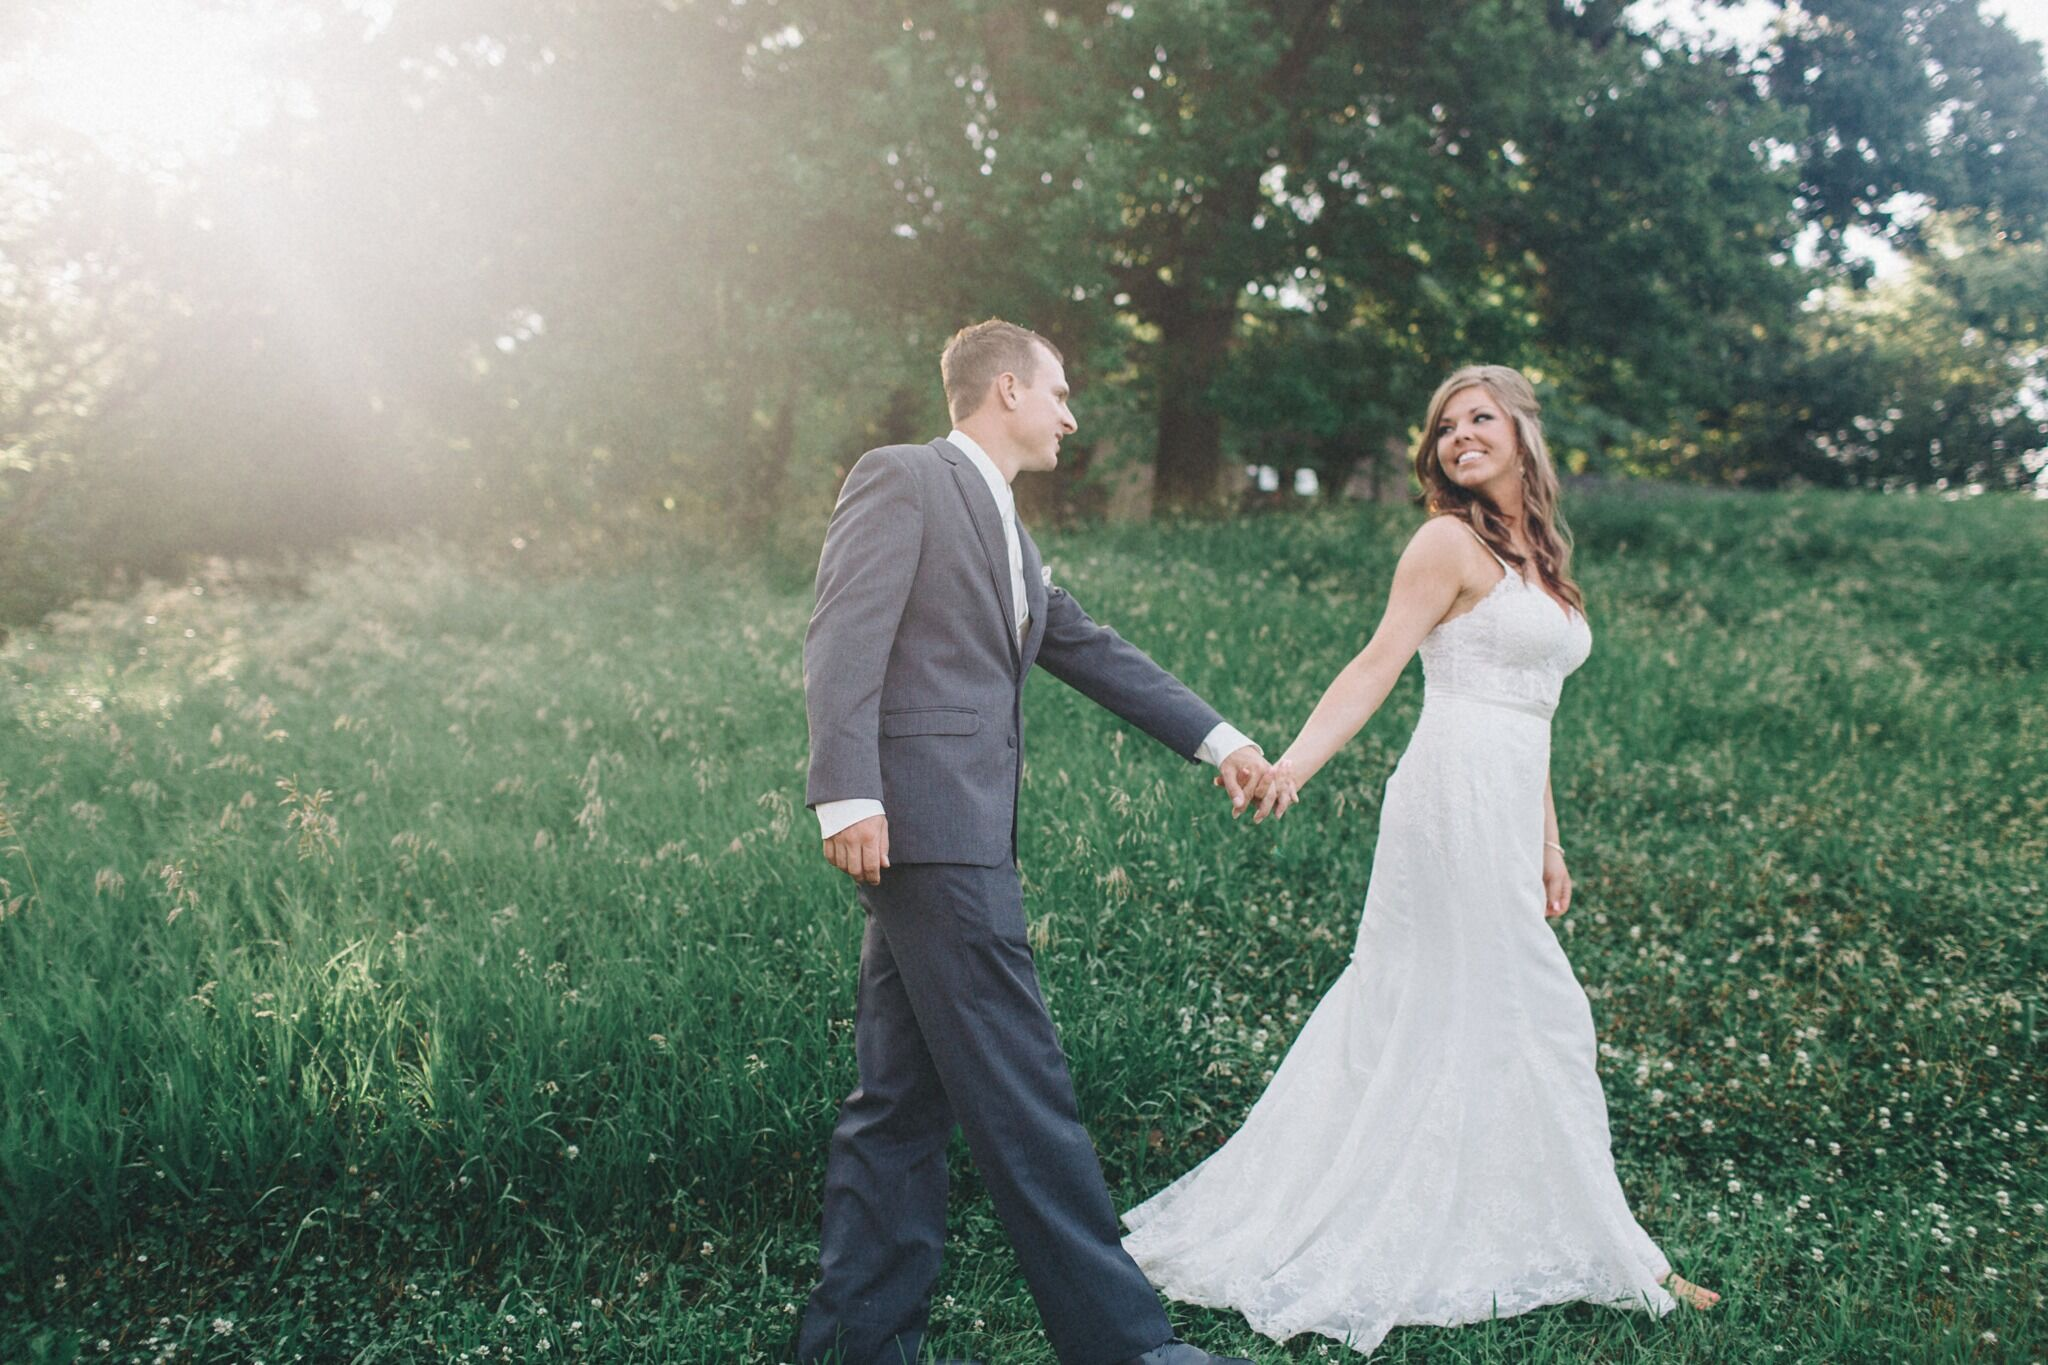 A Simple, Romantic Wedding at A View in Fontenelle Hills in Bellevue, Nebraska